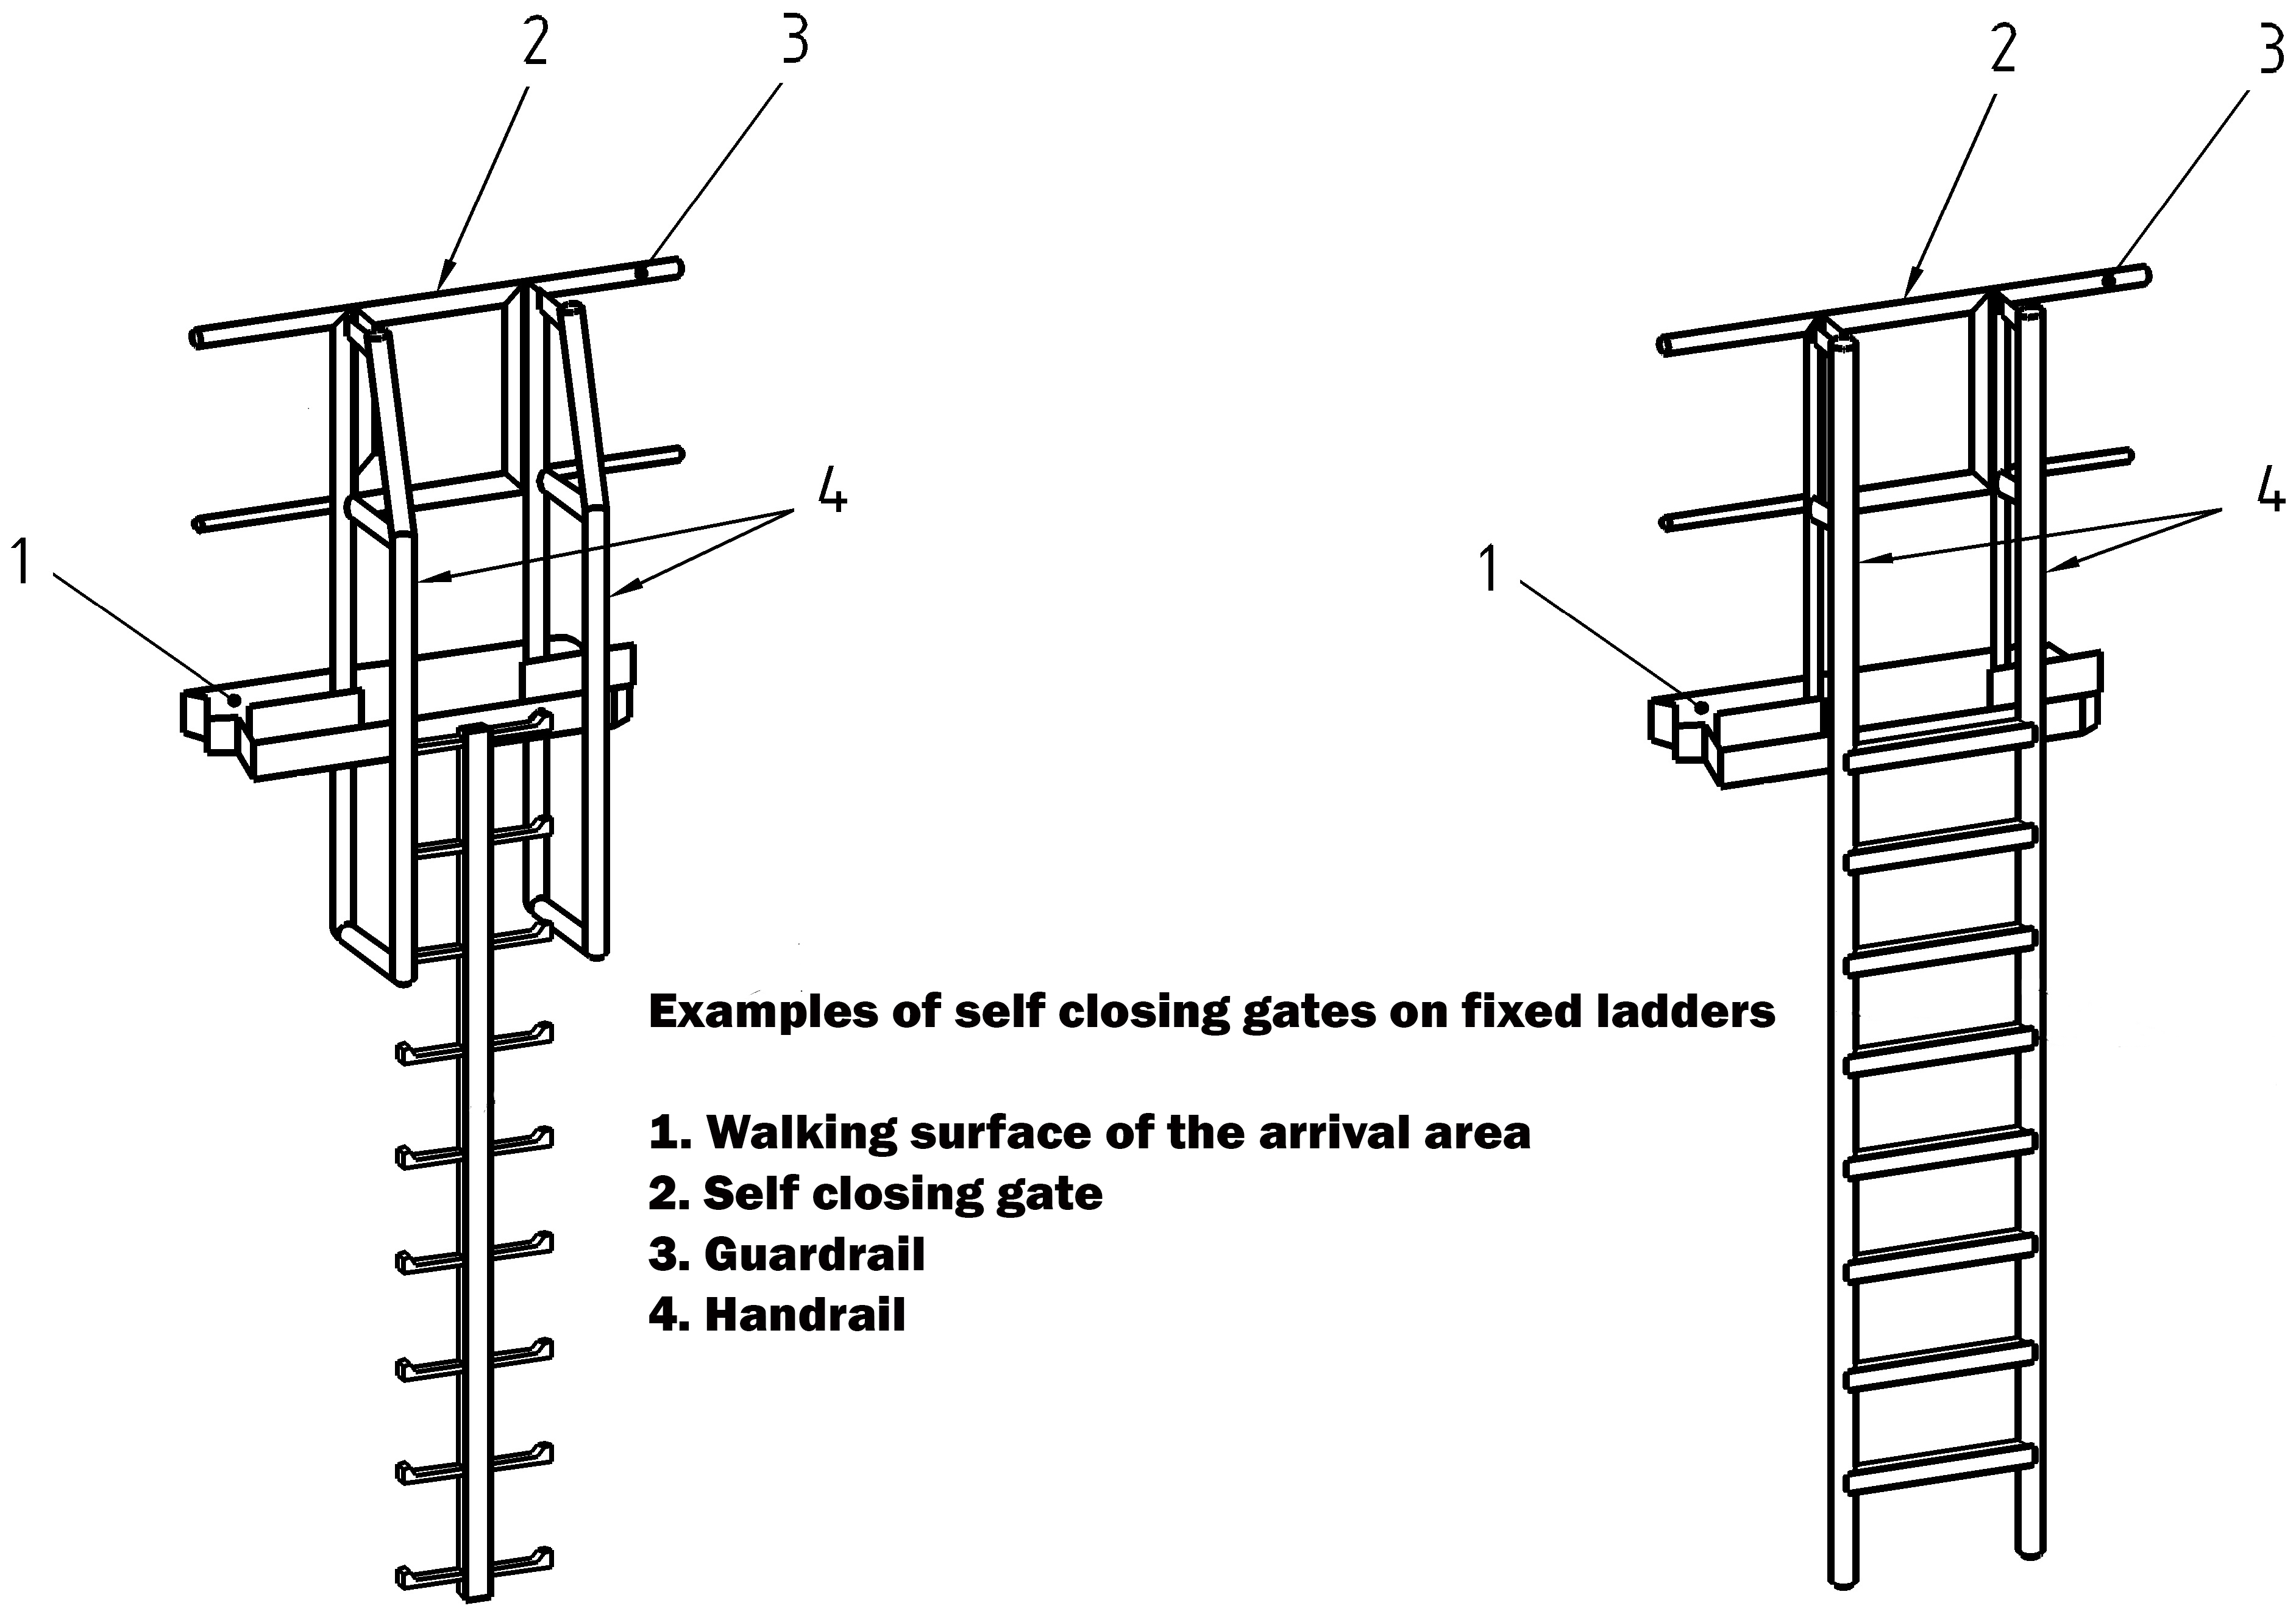 BS14122 fixed ladder safety